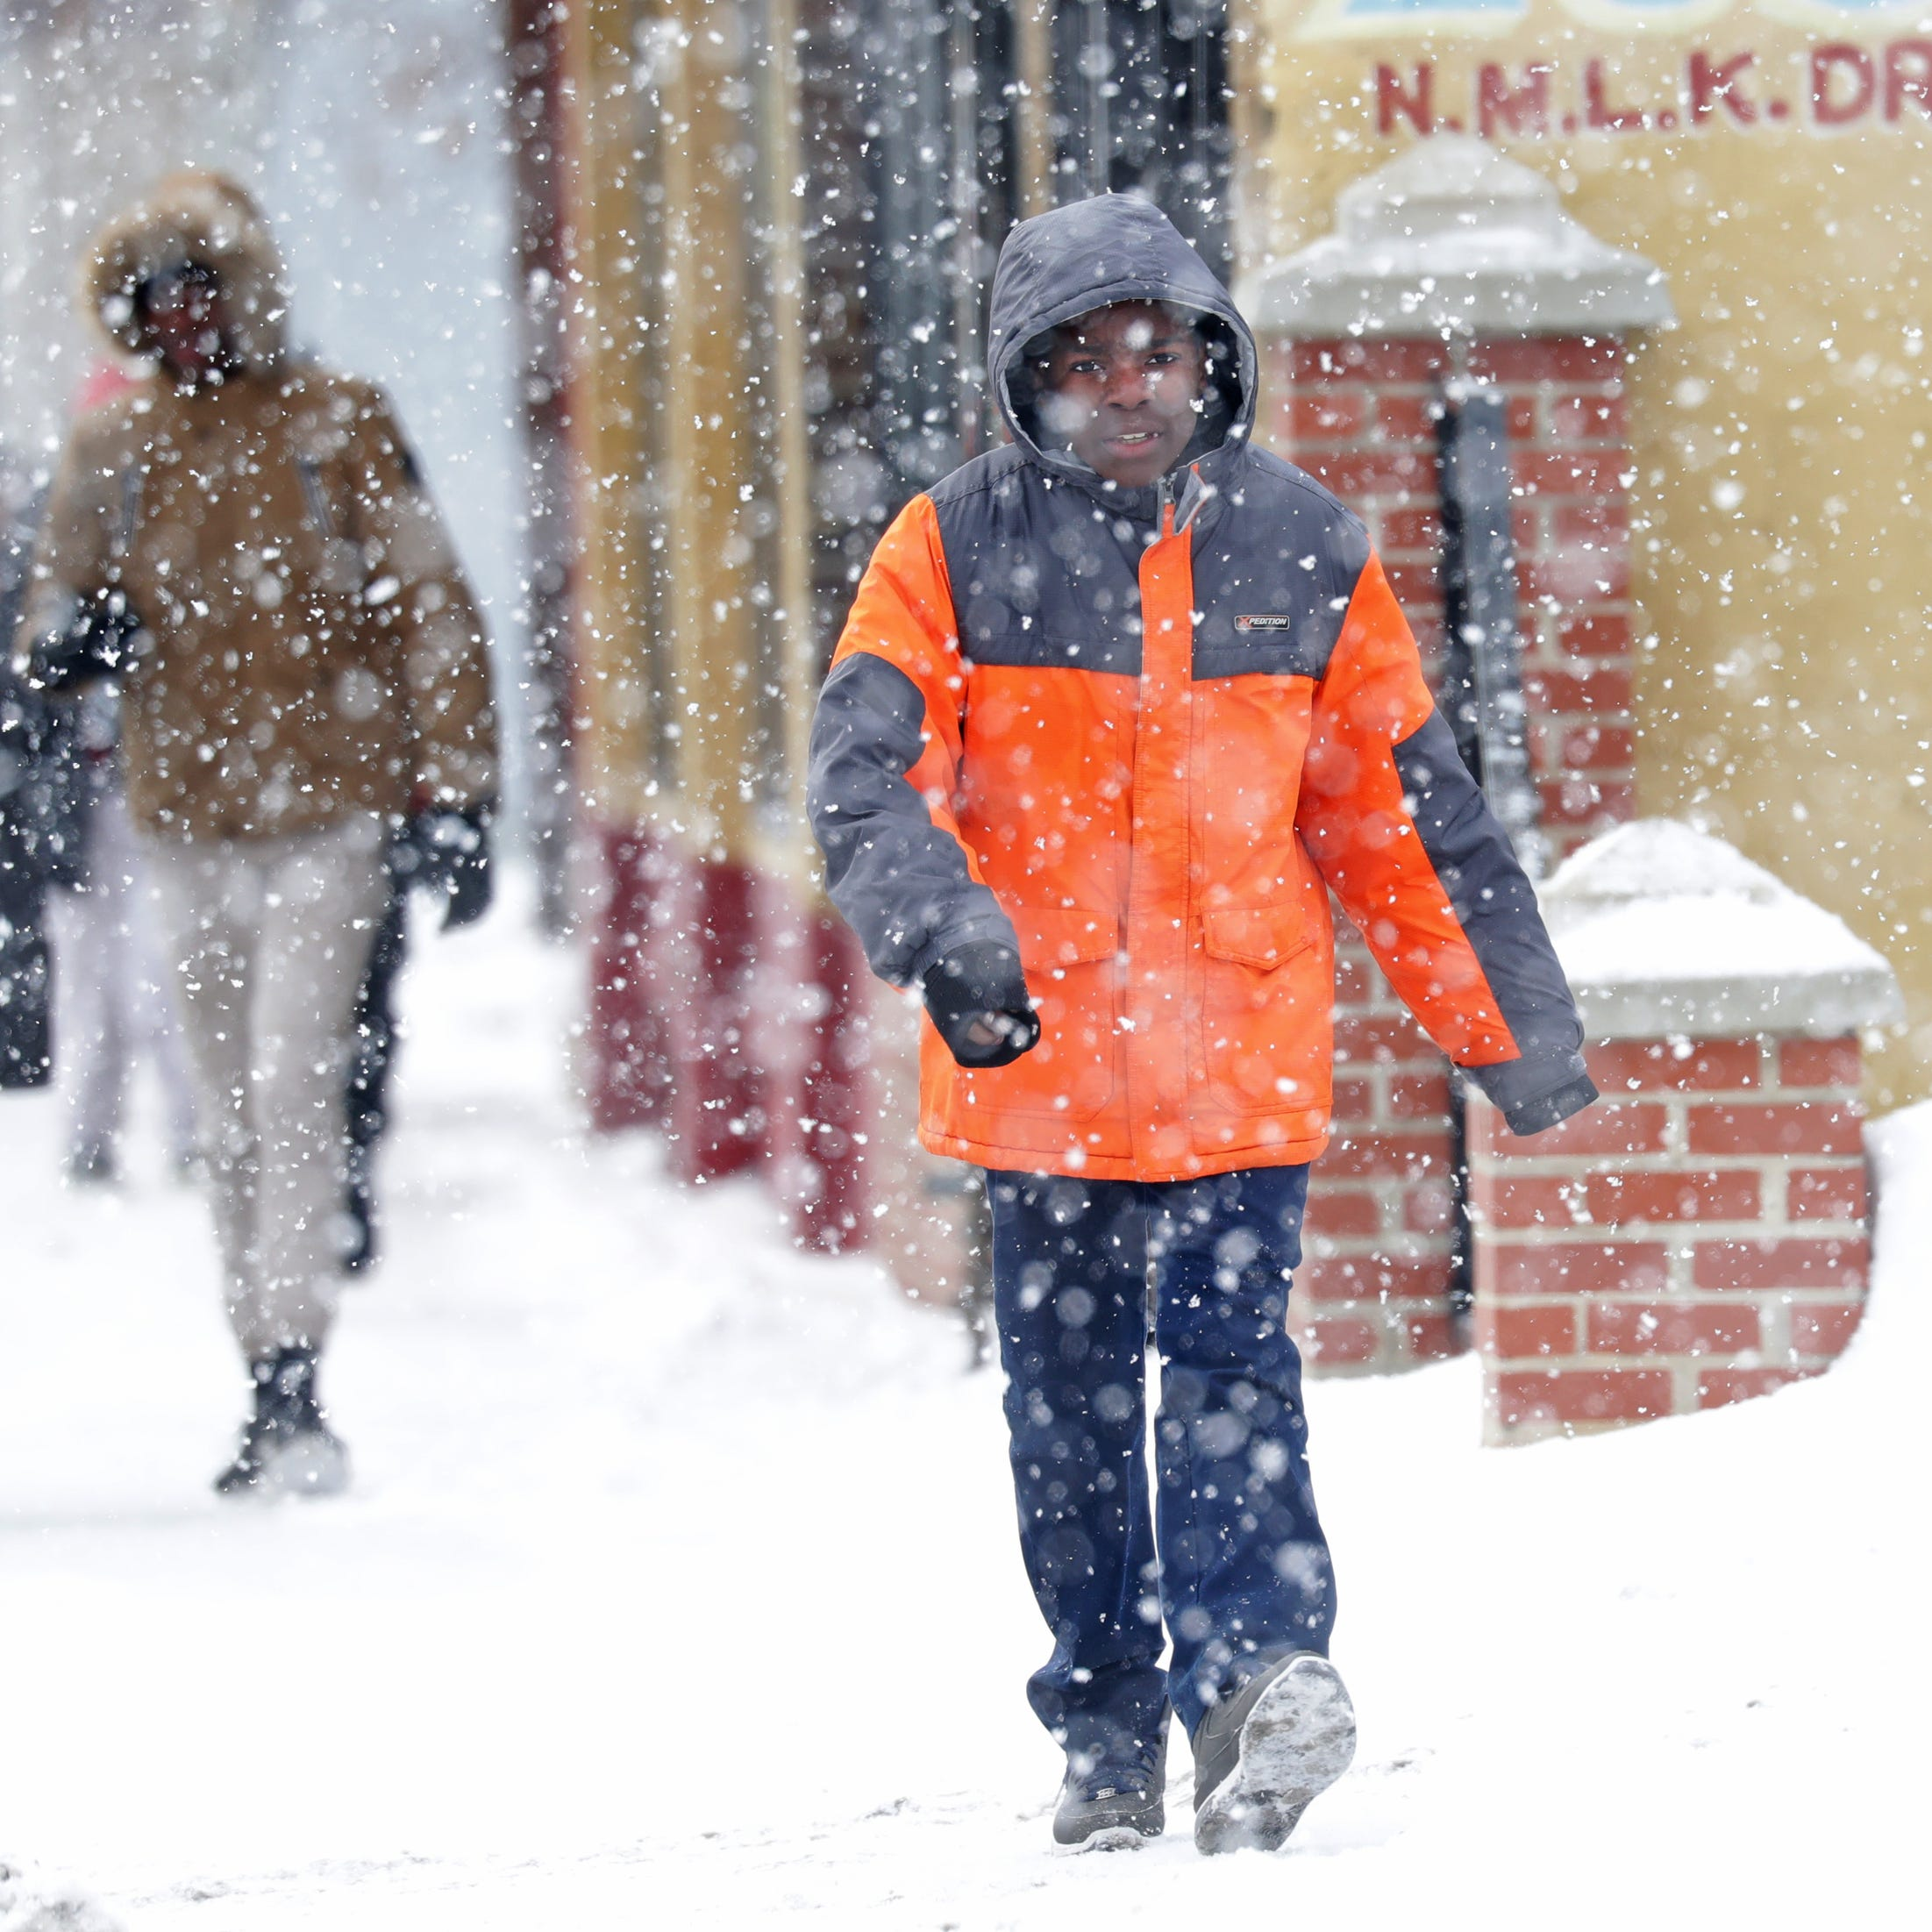 Wet, sloppy storm expected to hit Wisconsin Tuesday; afternoon commute could get nasty